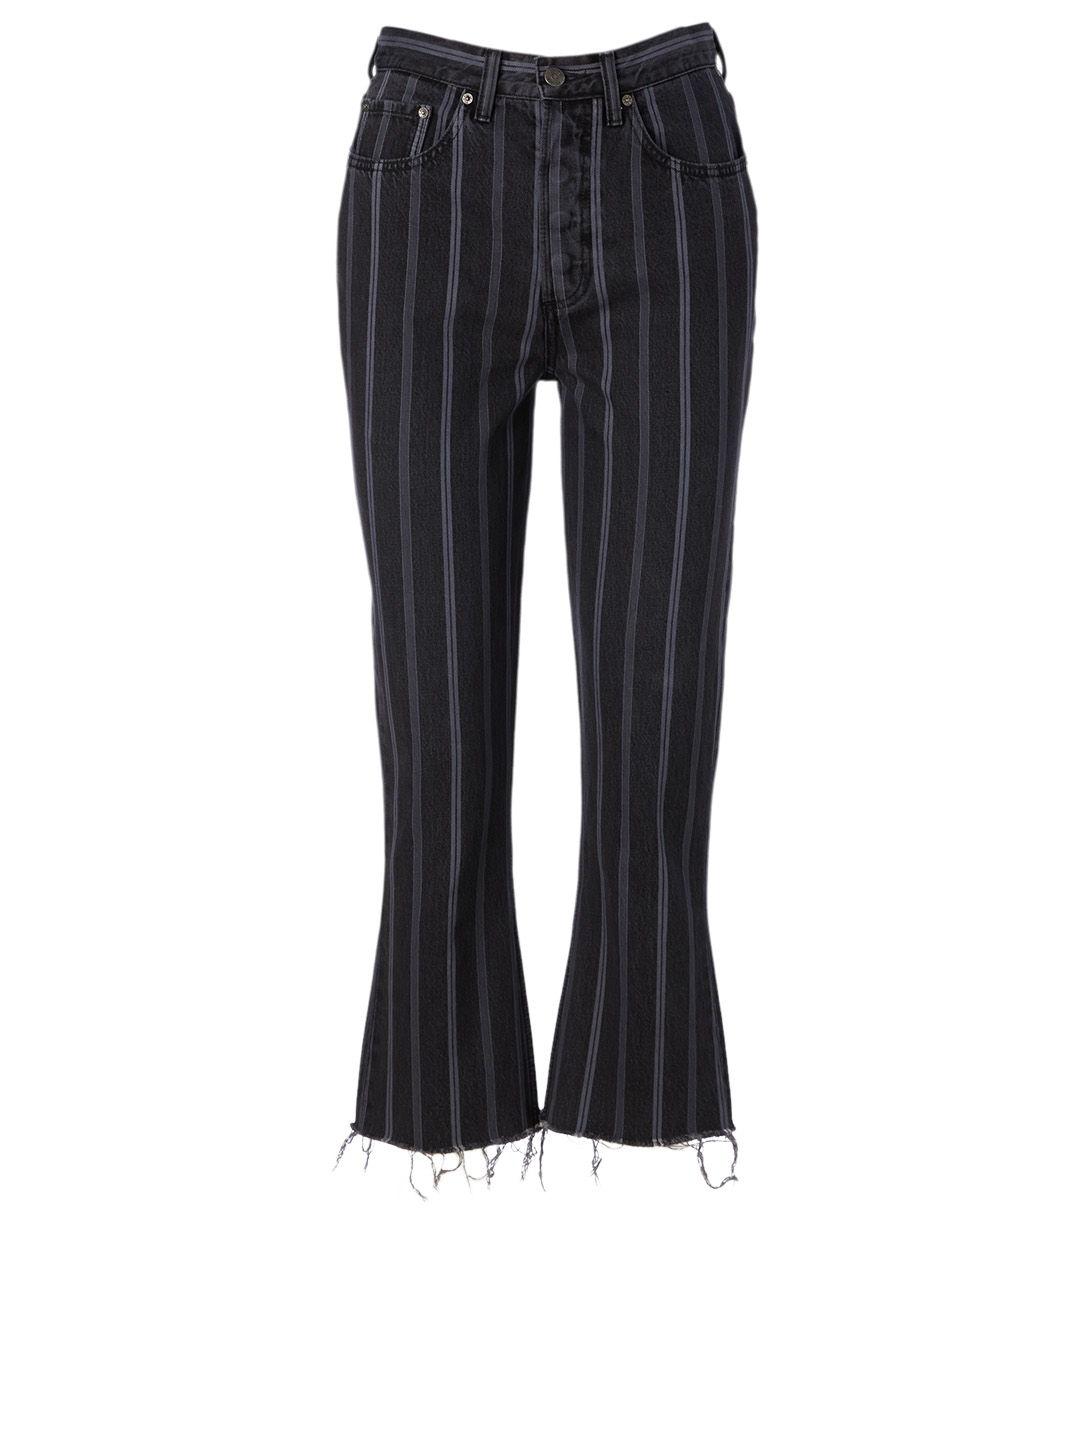 BOYISH The Darcy High-Waisted Jeans In Stripe Print Women's Black